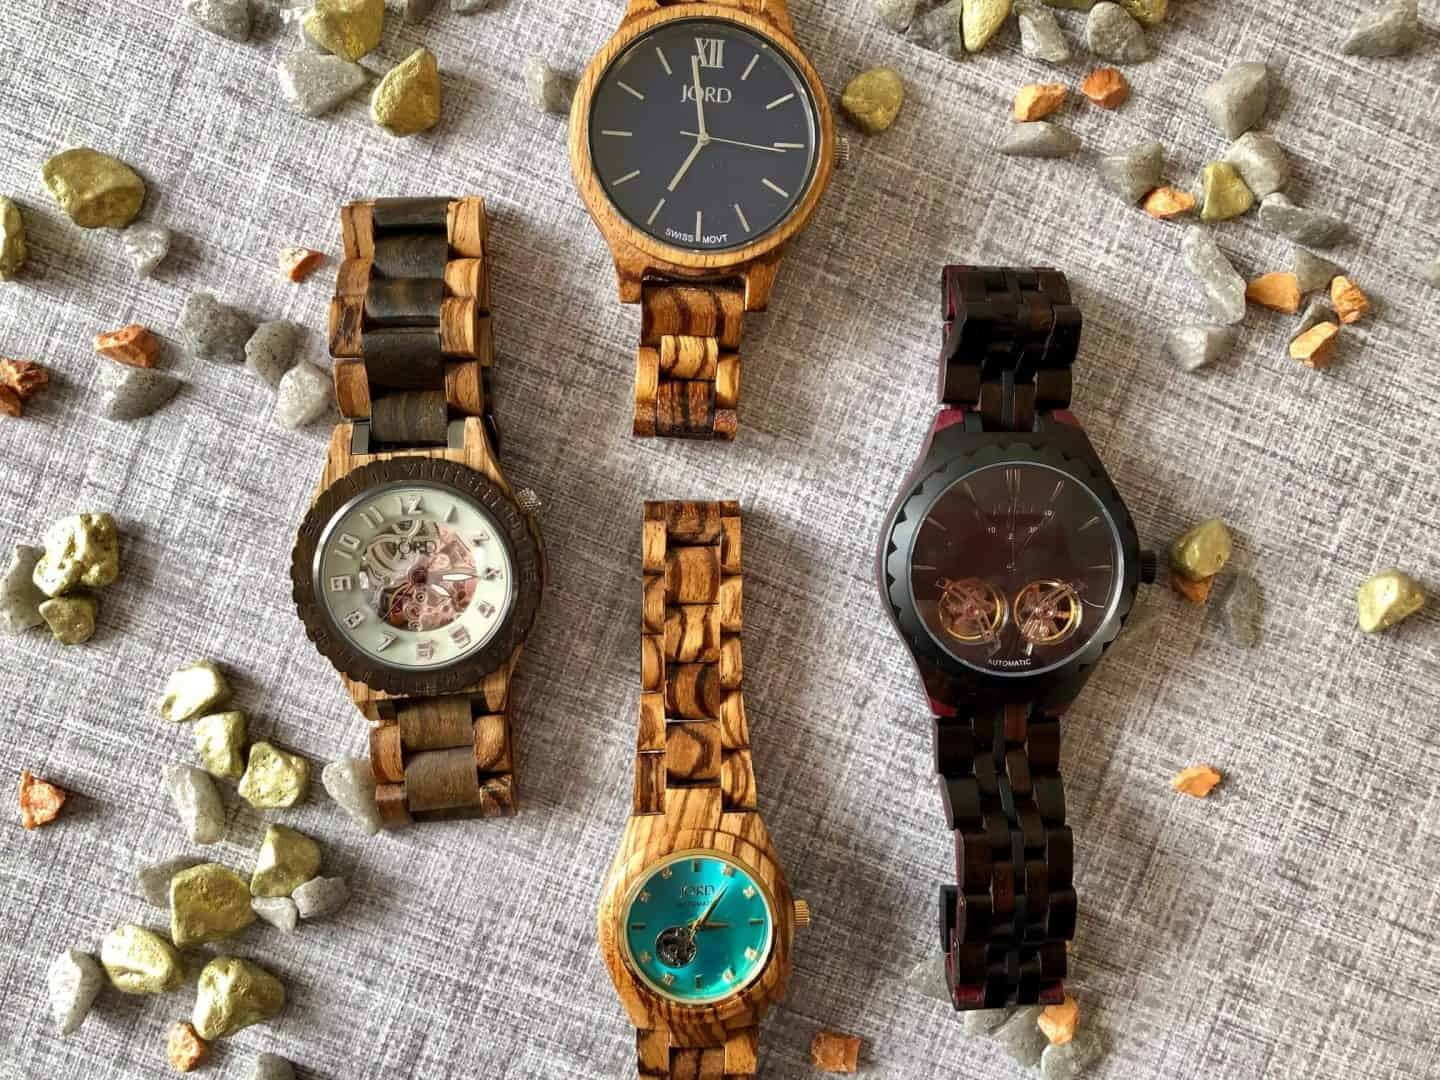 collection of JORD watches